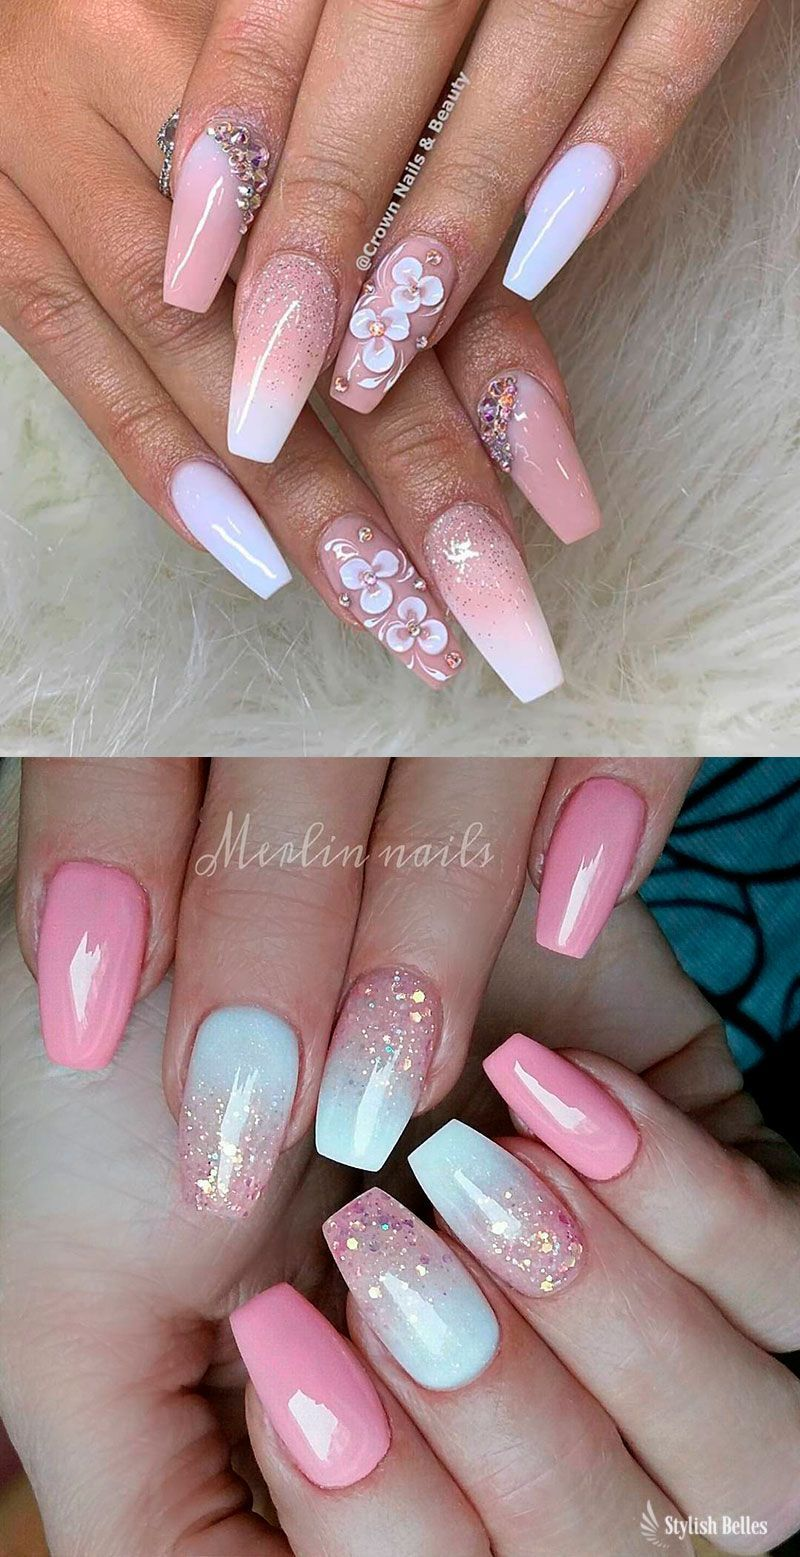 Gorgeous Pink And White Ombre Nails With Glitter Ideas Coffinnails Pinkandwhitenails Glitternails Ombrenails Ombre Nails Coffin Nails Designs Pink Nails